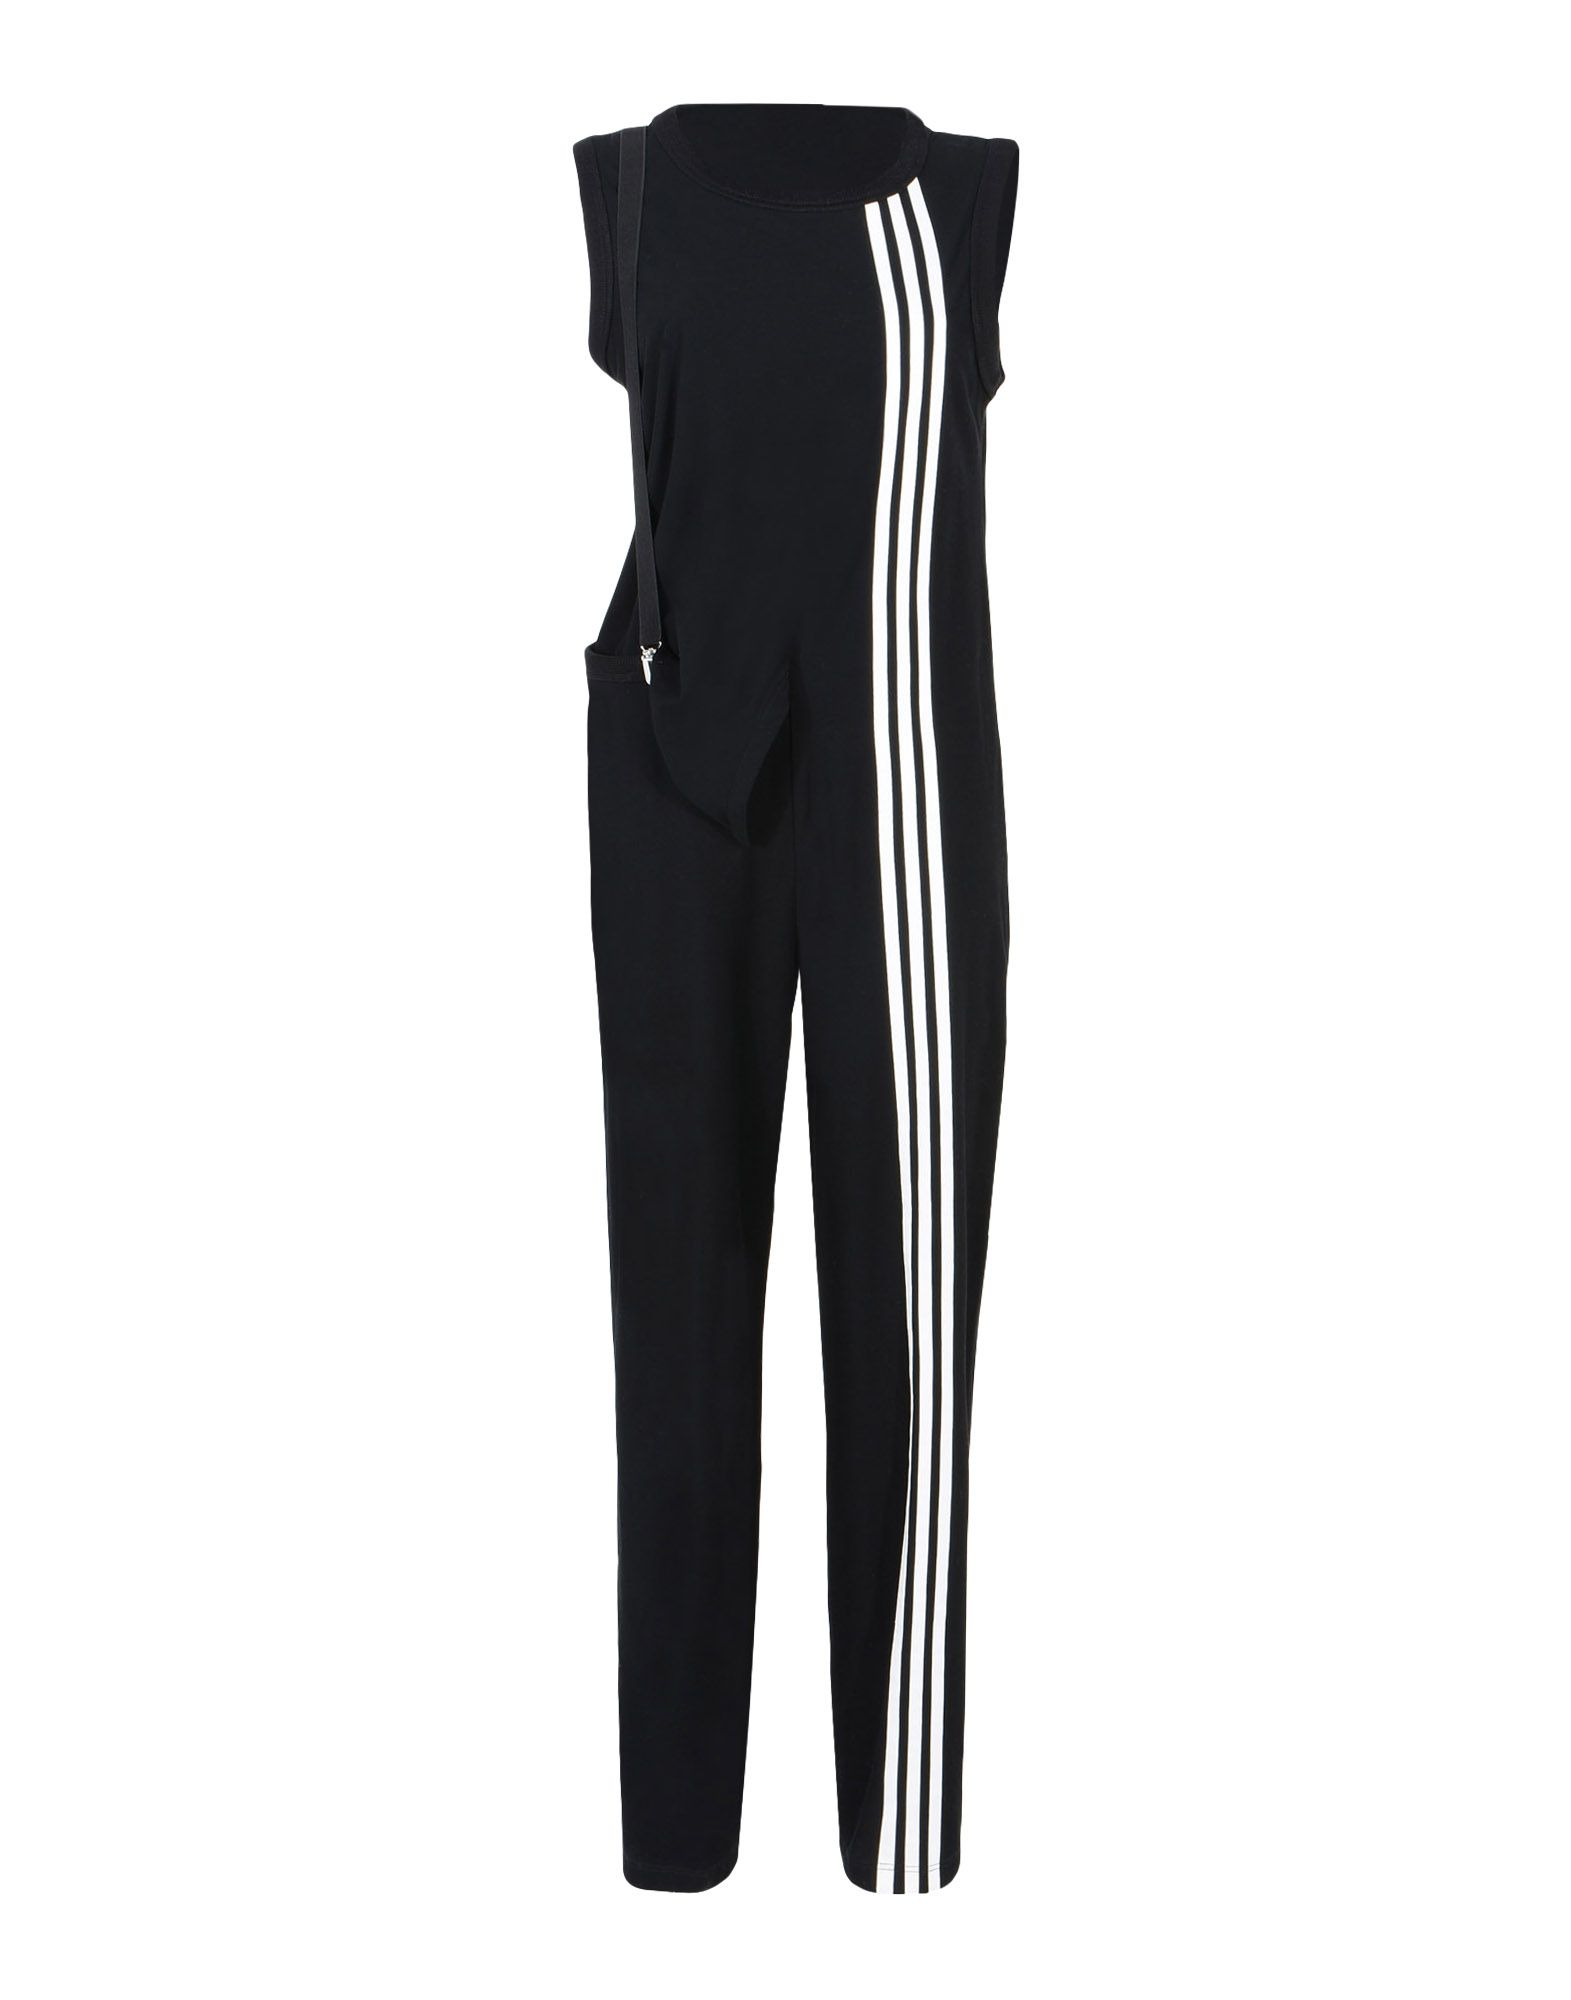 7d46ac2dba2 ... Y-3 Y-3 3-STRIPES JUMPSUIT Overall Woman f ...